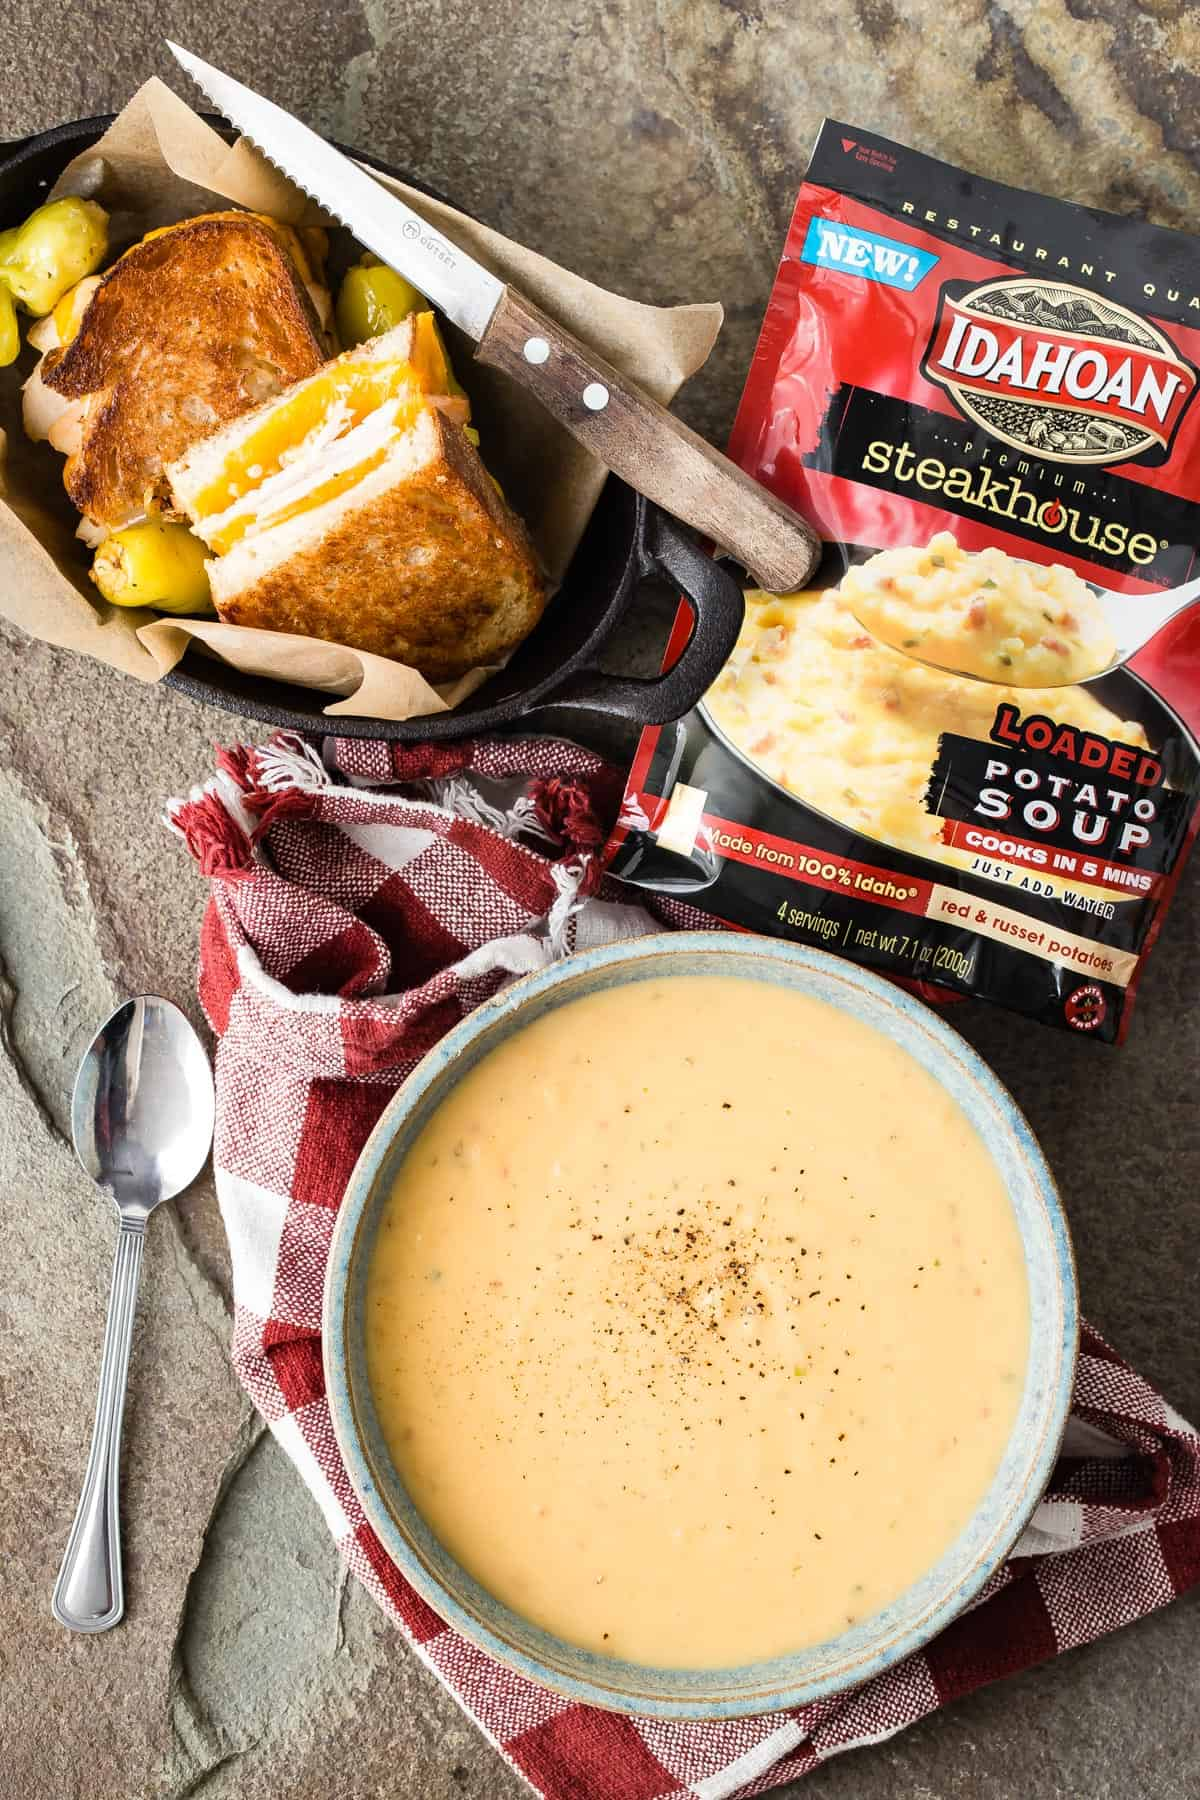 Creamy Loaded Potato Soup from Idahoan®. Full of red and russet potatoes including the skins and paired along with a turkey grilled cheese sandwich. This is the perfect lunch for the day after Thanksgiving!